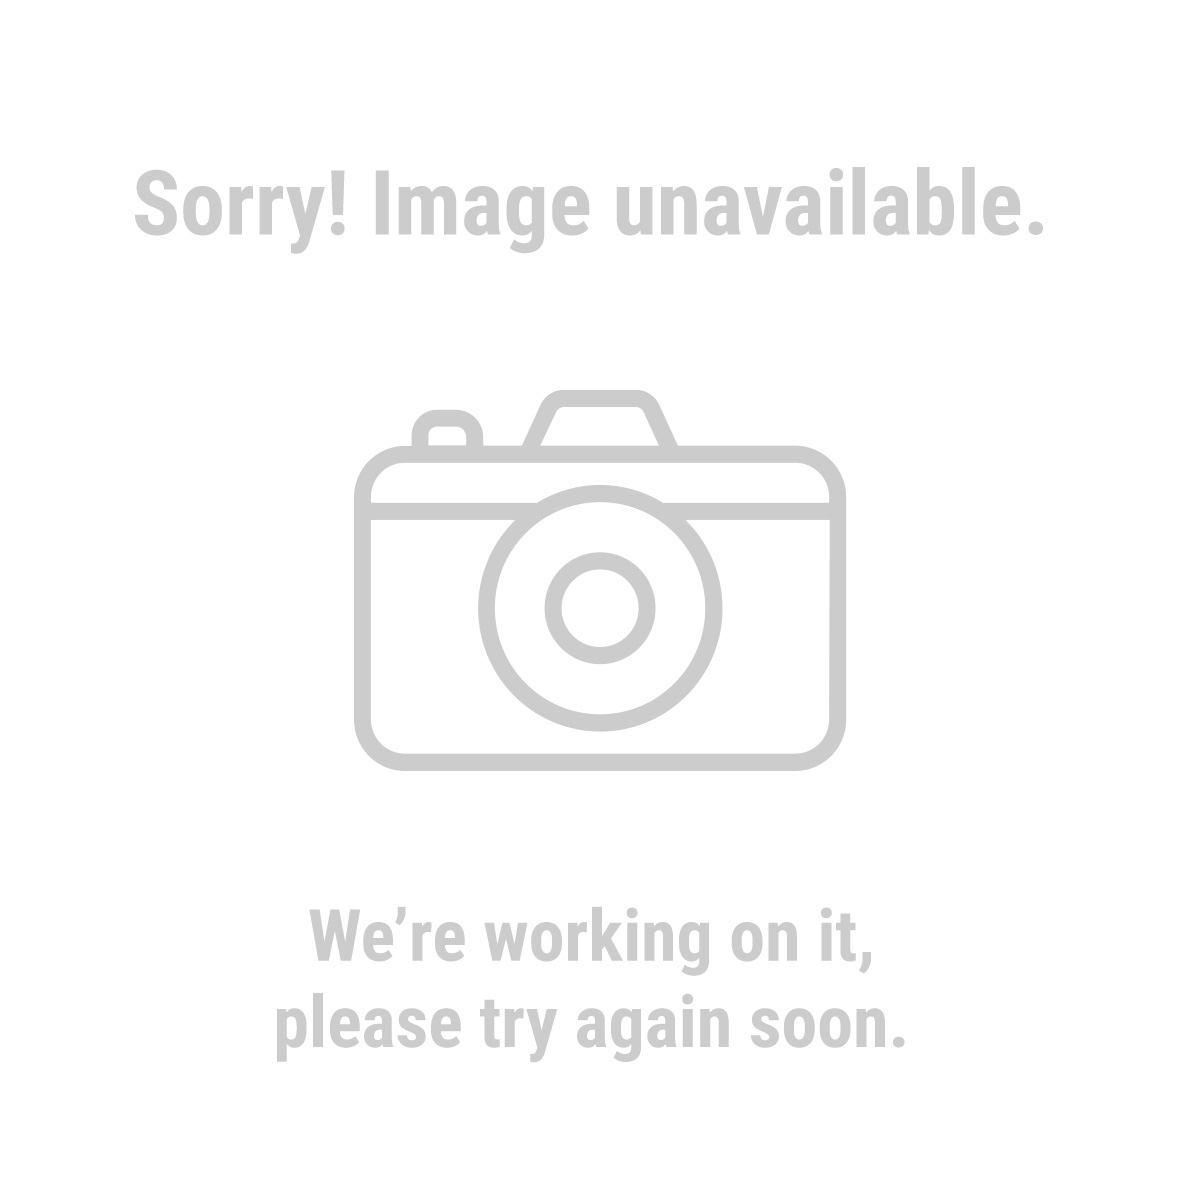 Storehouse 67665 60 Piece ATO/ATC Blade Fuse Set